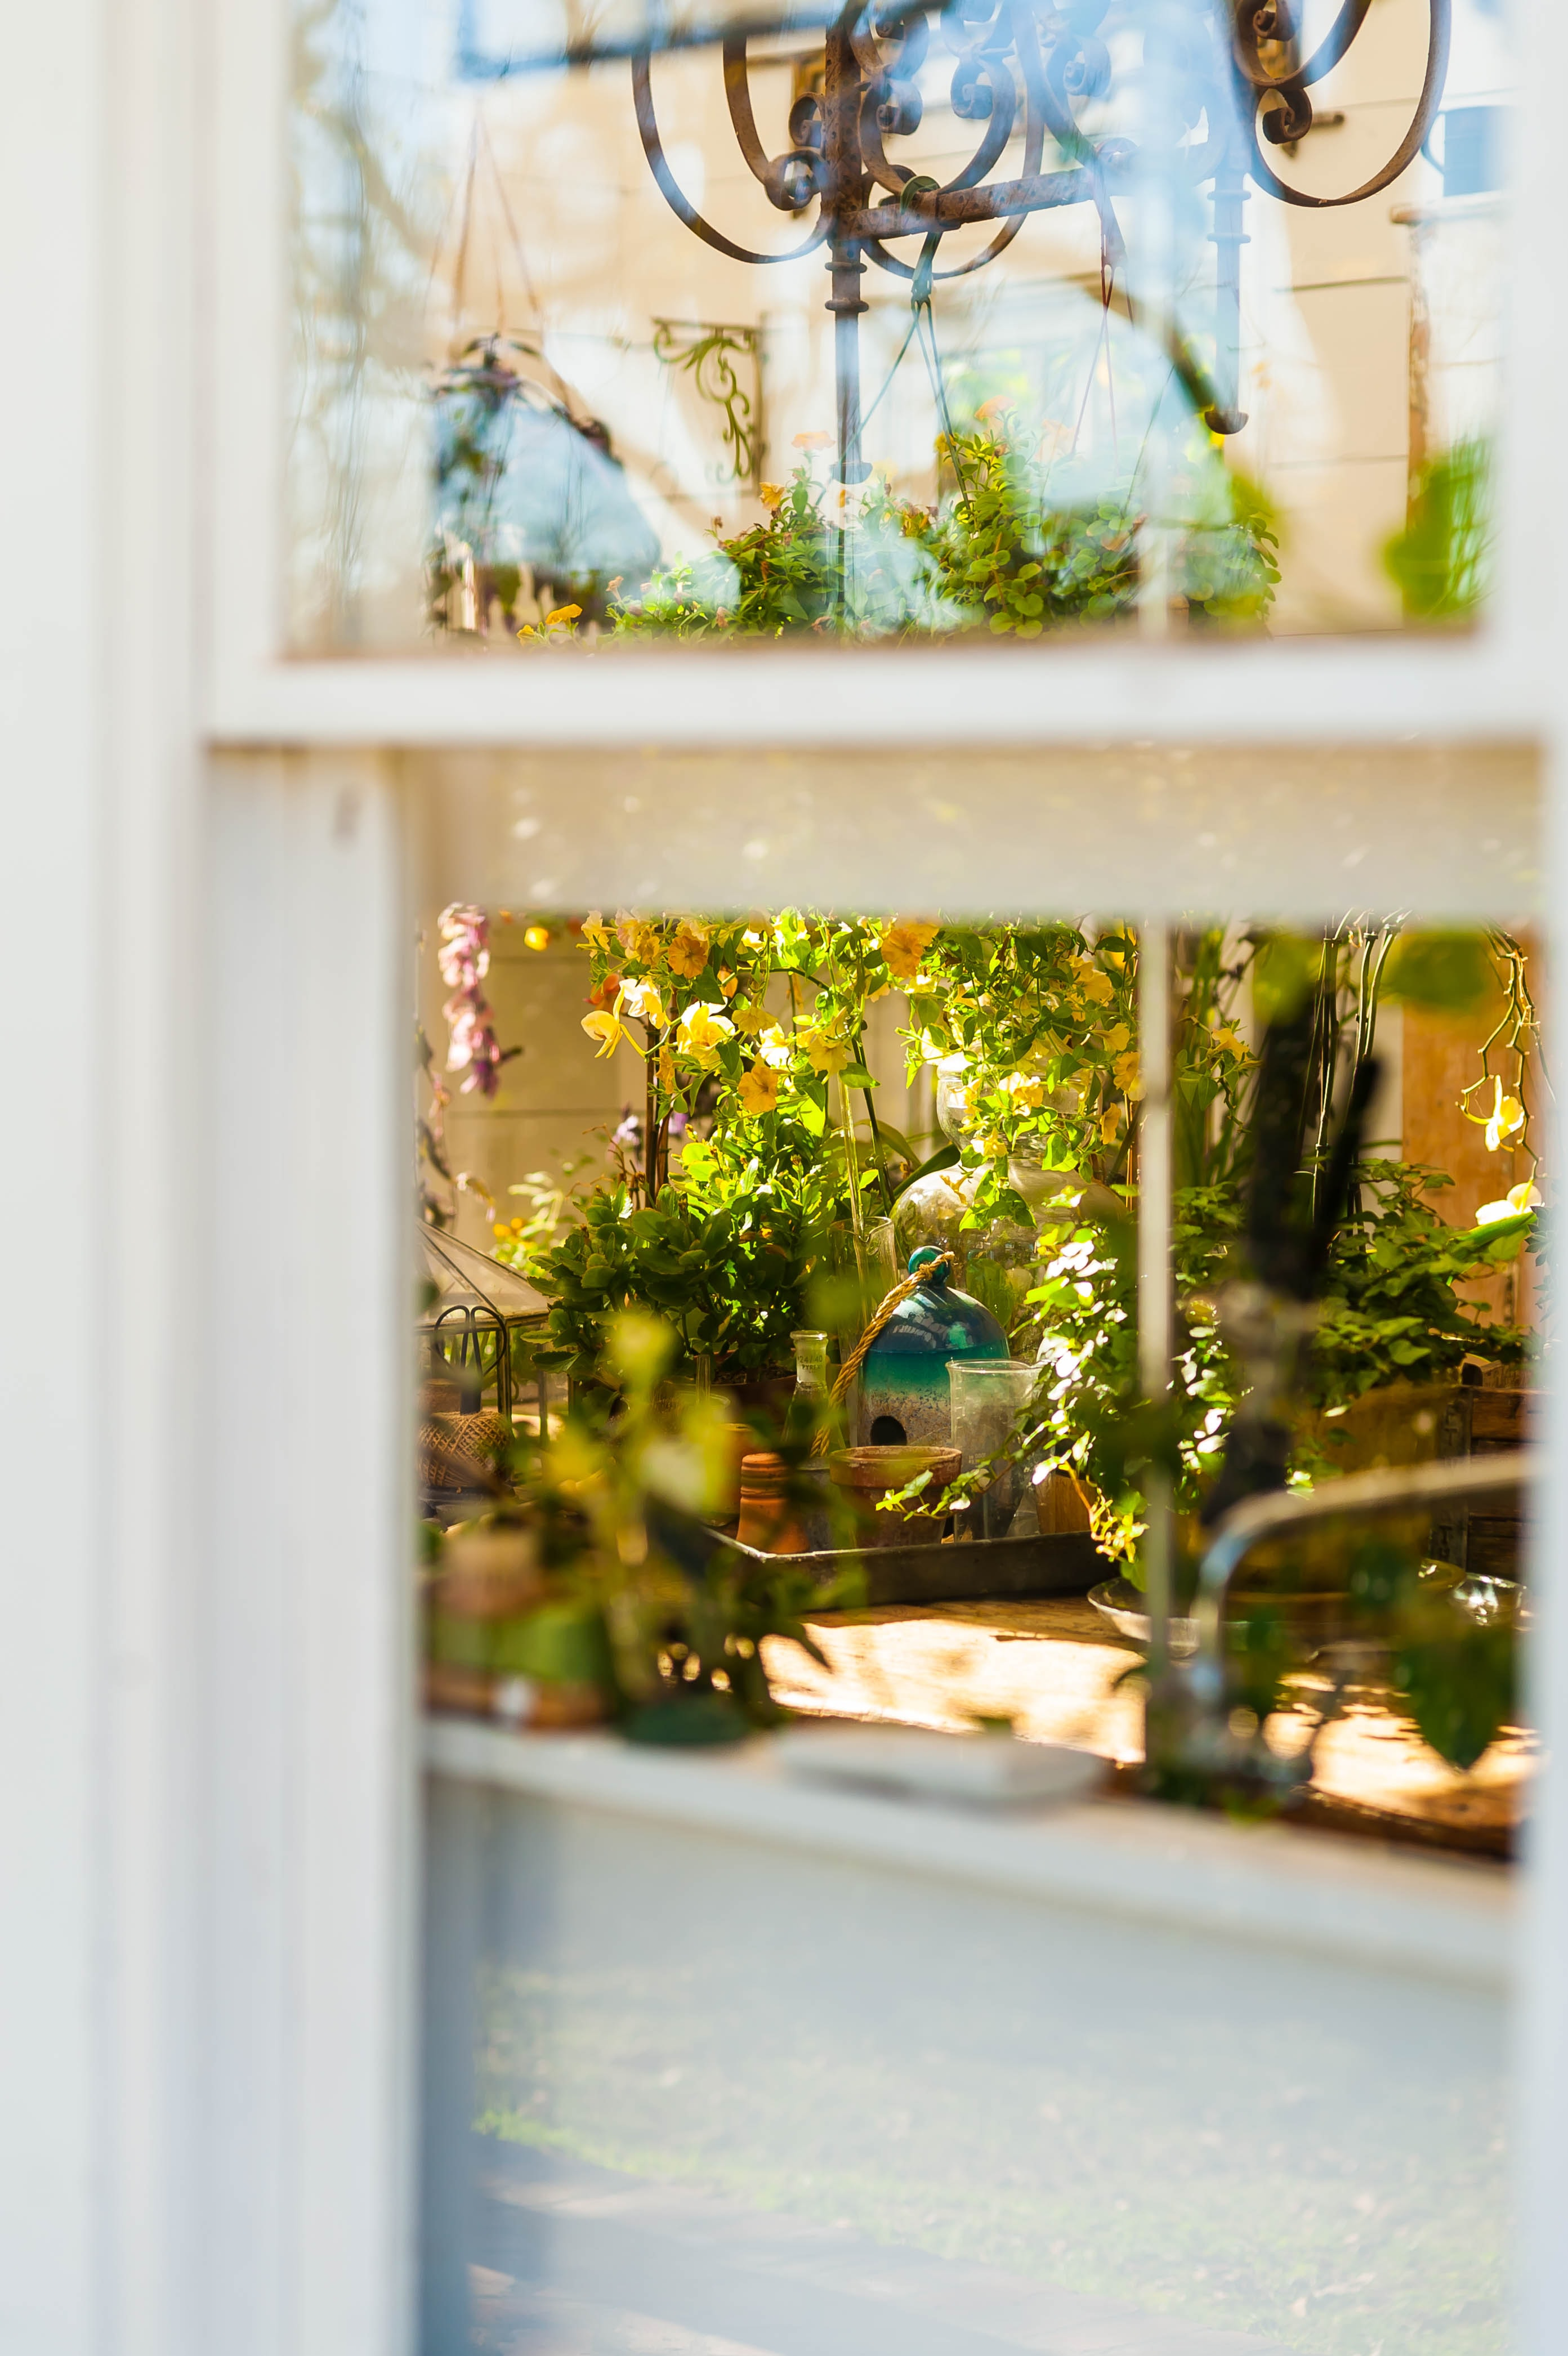 Window Plant Glass And Garden Hd Photo By James Balensiefen